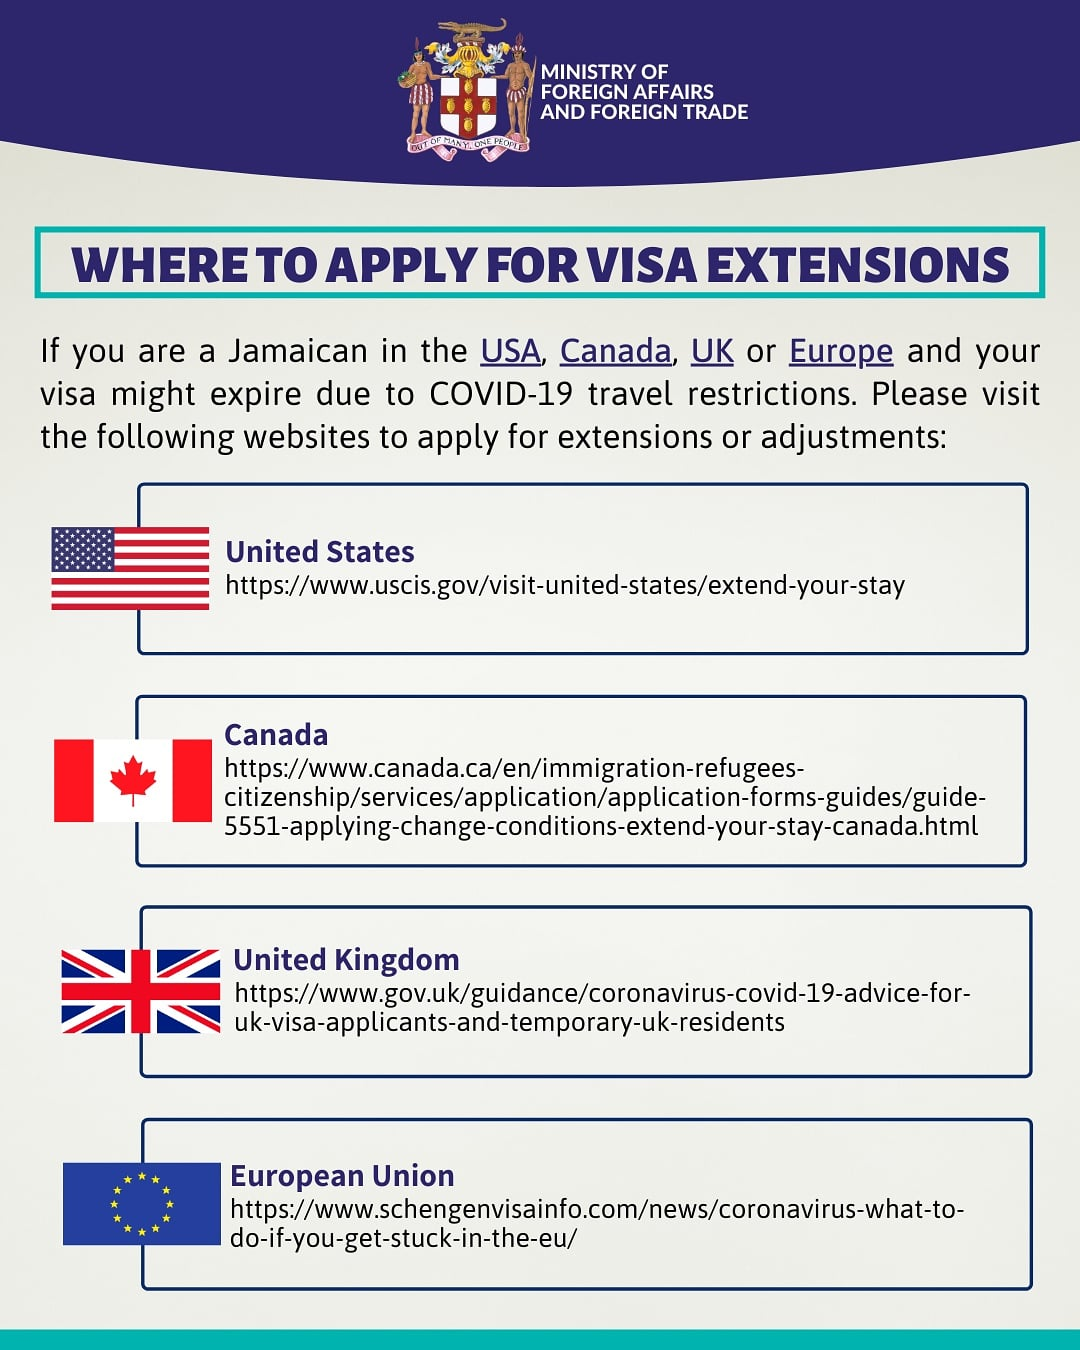 Ministry Of Foreign Affairs And Foreign Trade Goj On Twitter Are You A Jamaican In The Us Canada Uk Or Europe Whose Visa Might Expire Due To Covid19 Travel Restrictions Then Visit